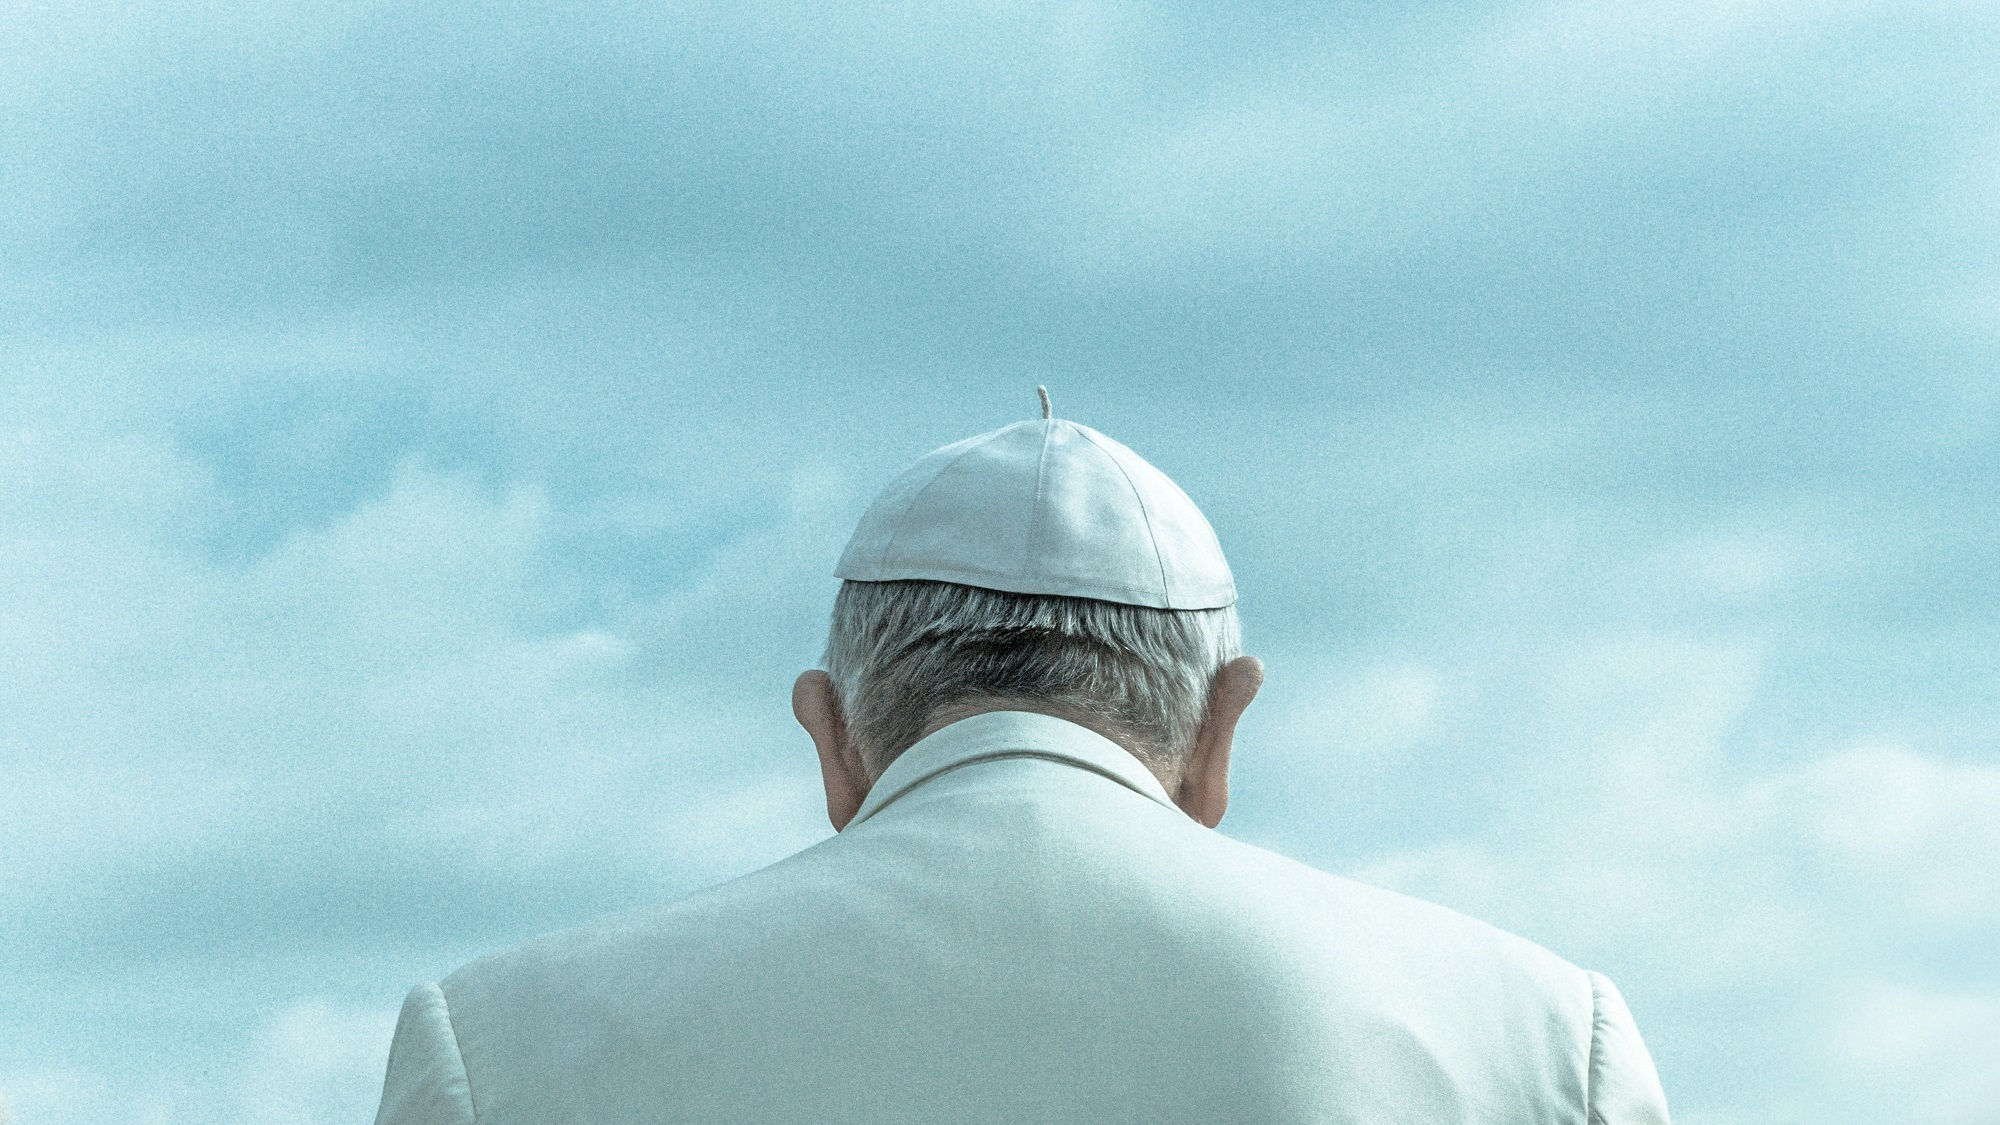 What does the Pope do?